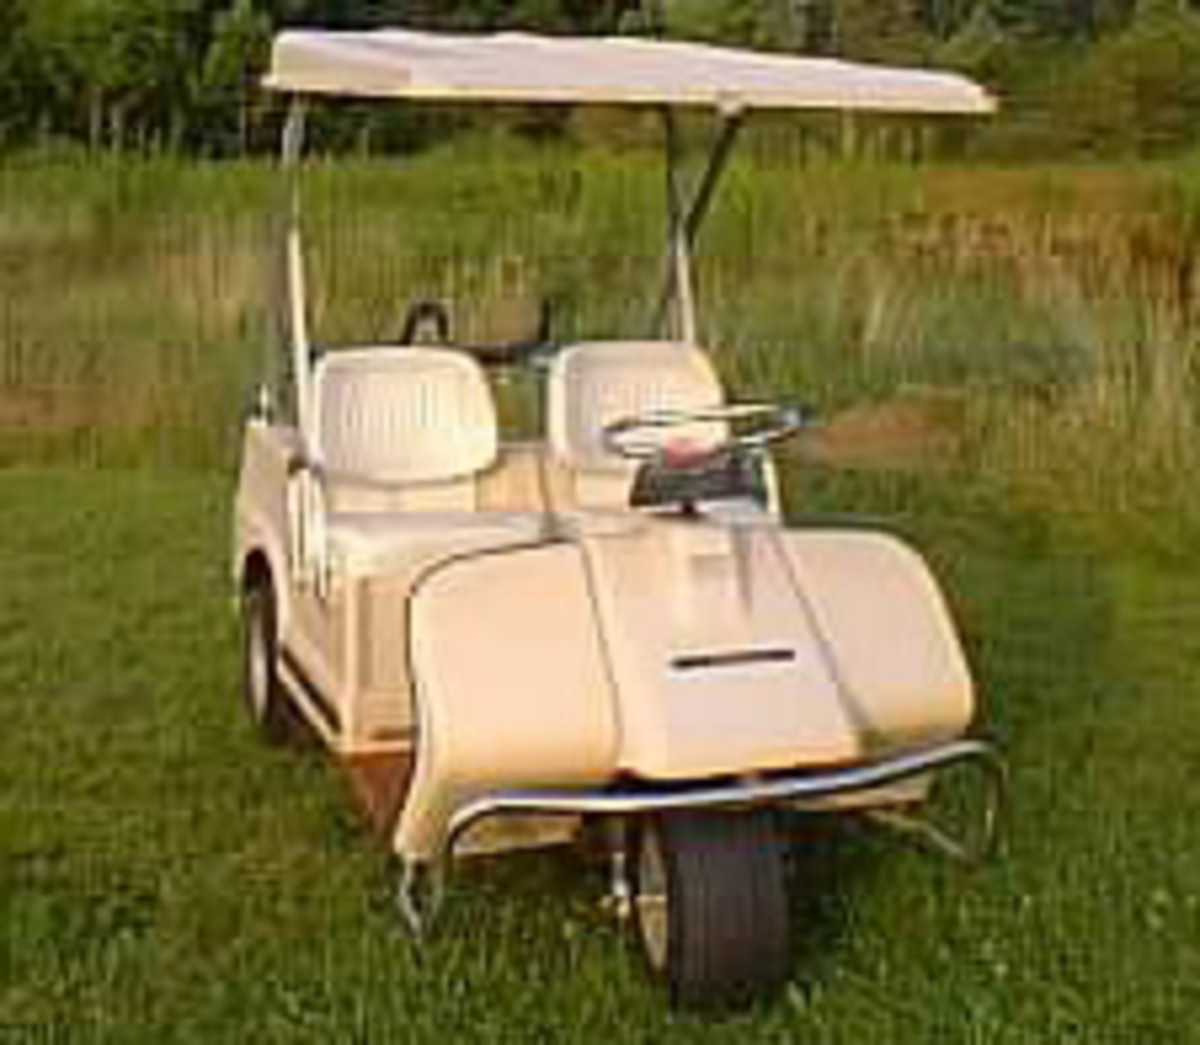 Harley-Davidson Golf Carts | HubPages on